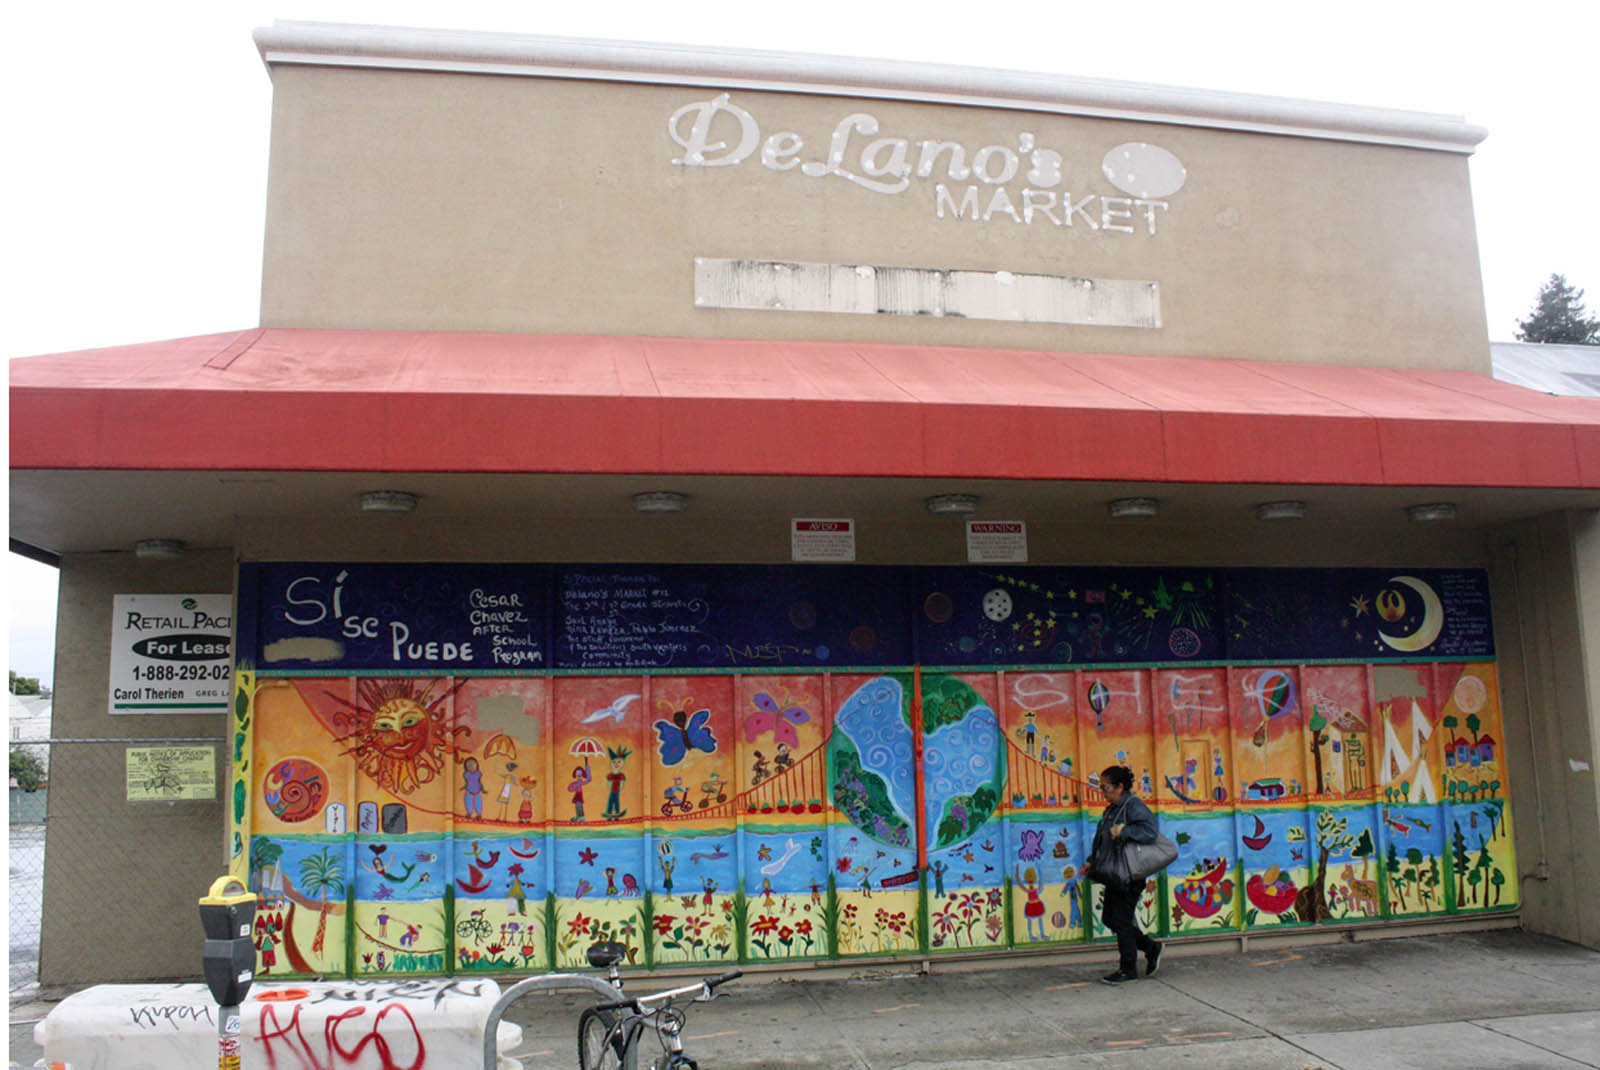 Fresh & Easy will move in the former DeLano's supermarket location